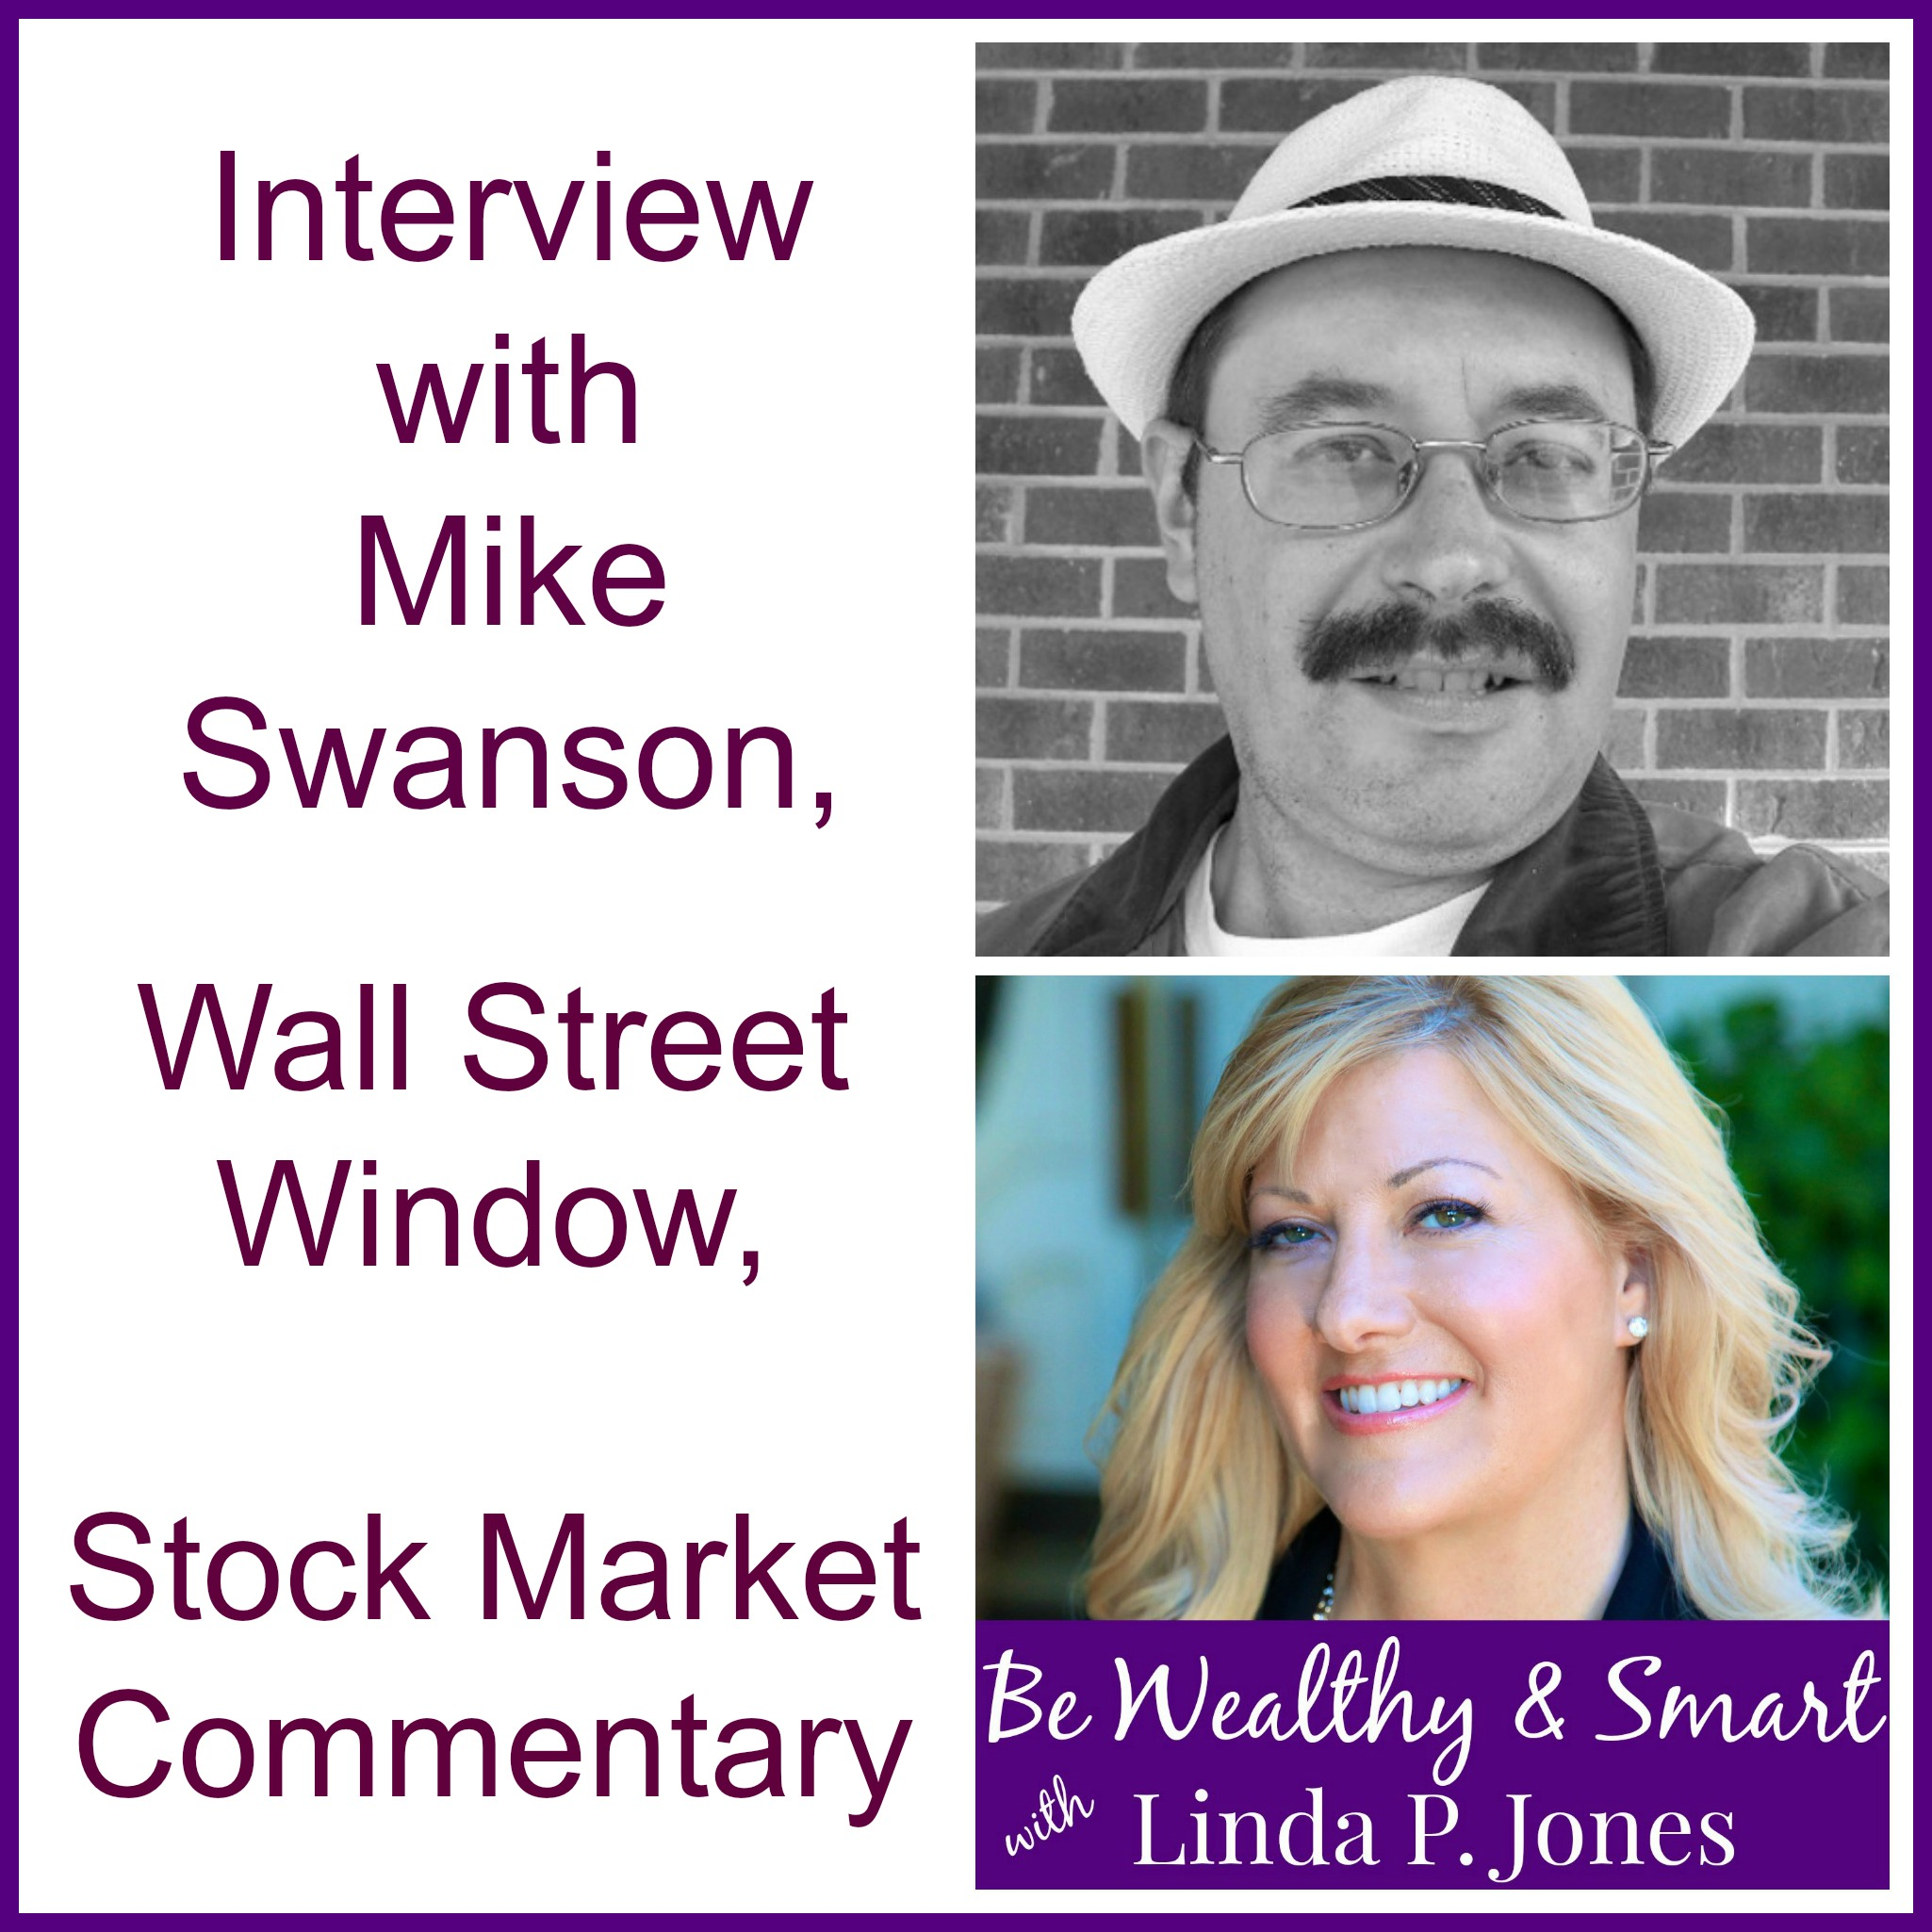 079: Interview with Mike Swanson, Wall Street Window